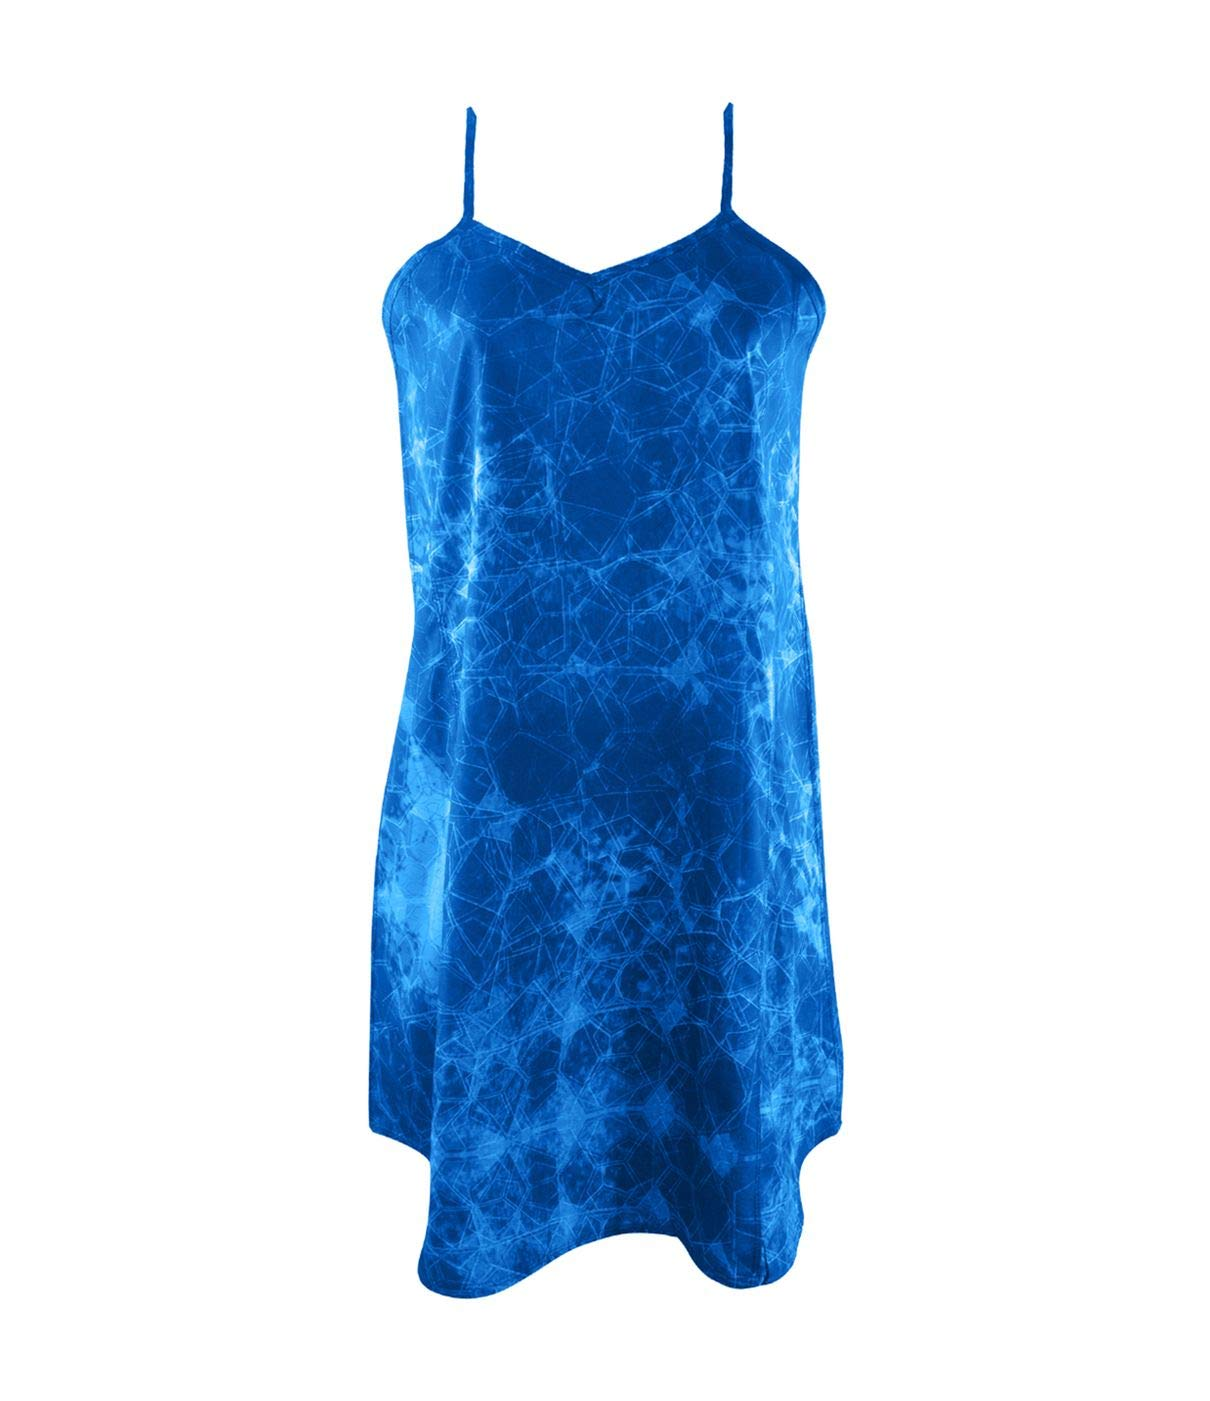 PELAGIC Balboa Performance Dress - Hex | Medium | Blue by PELAGIC